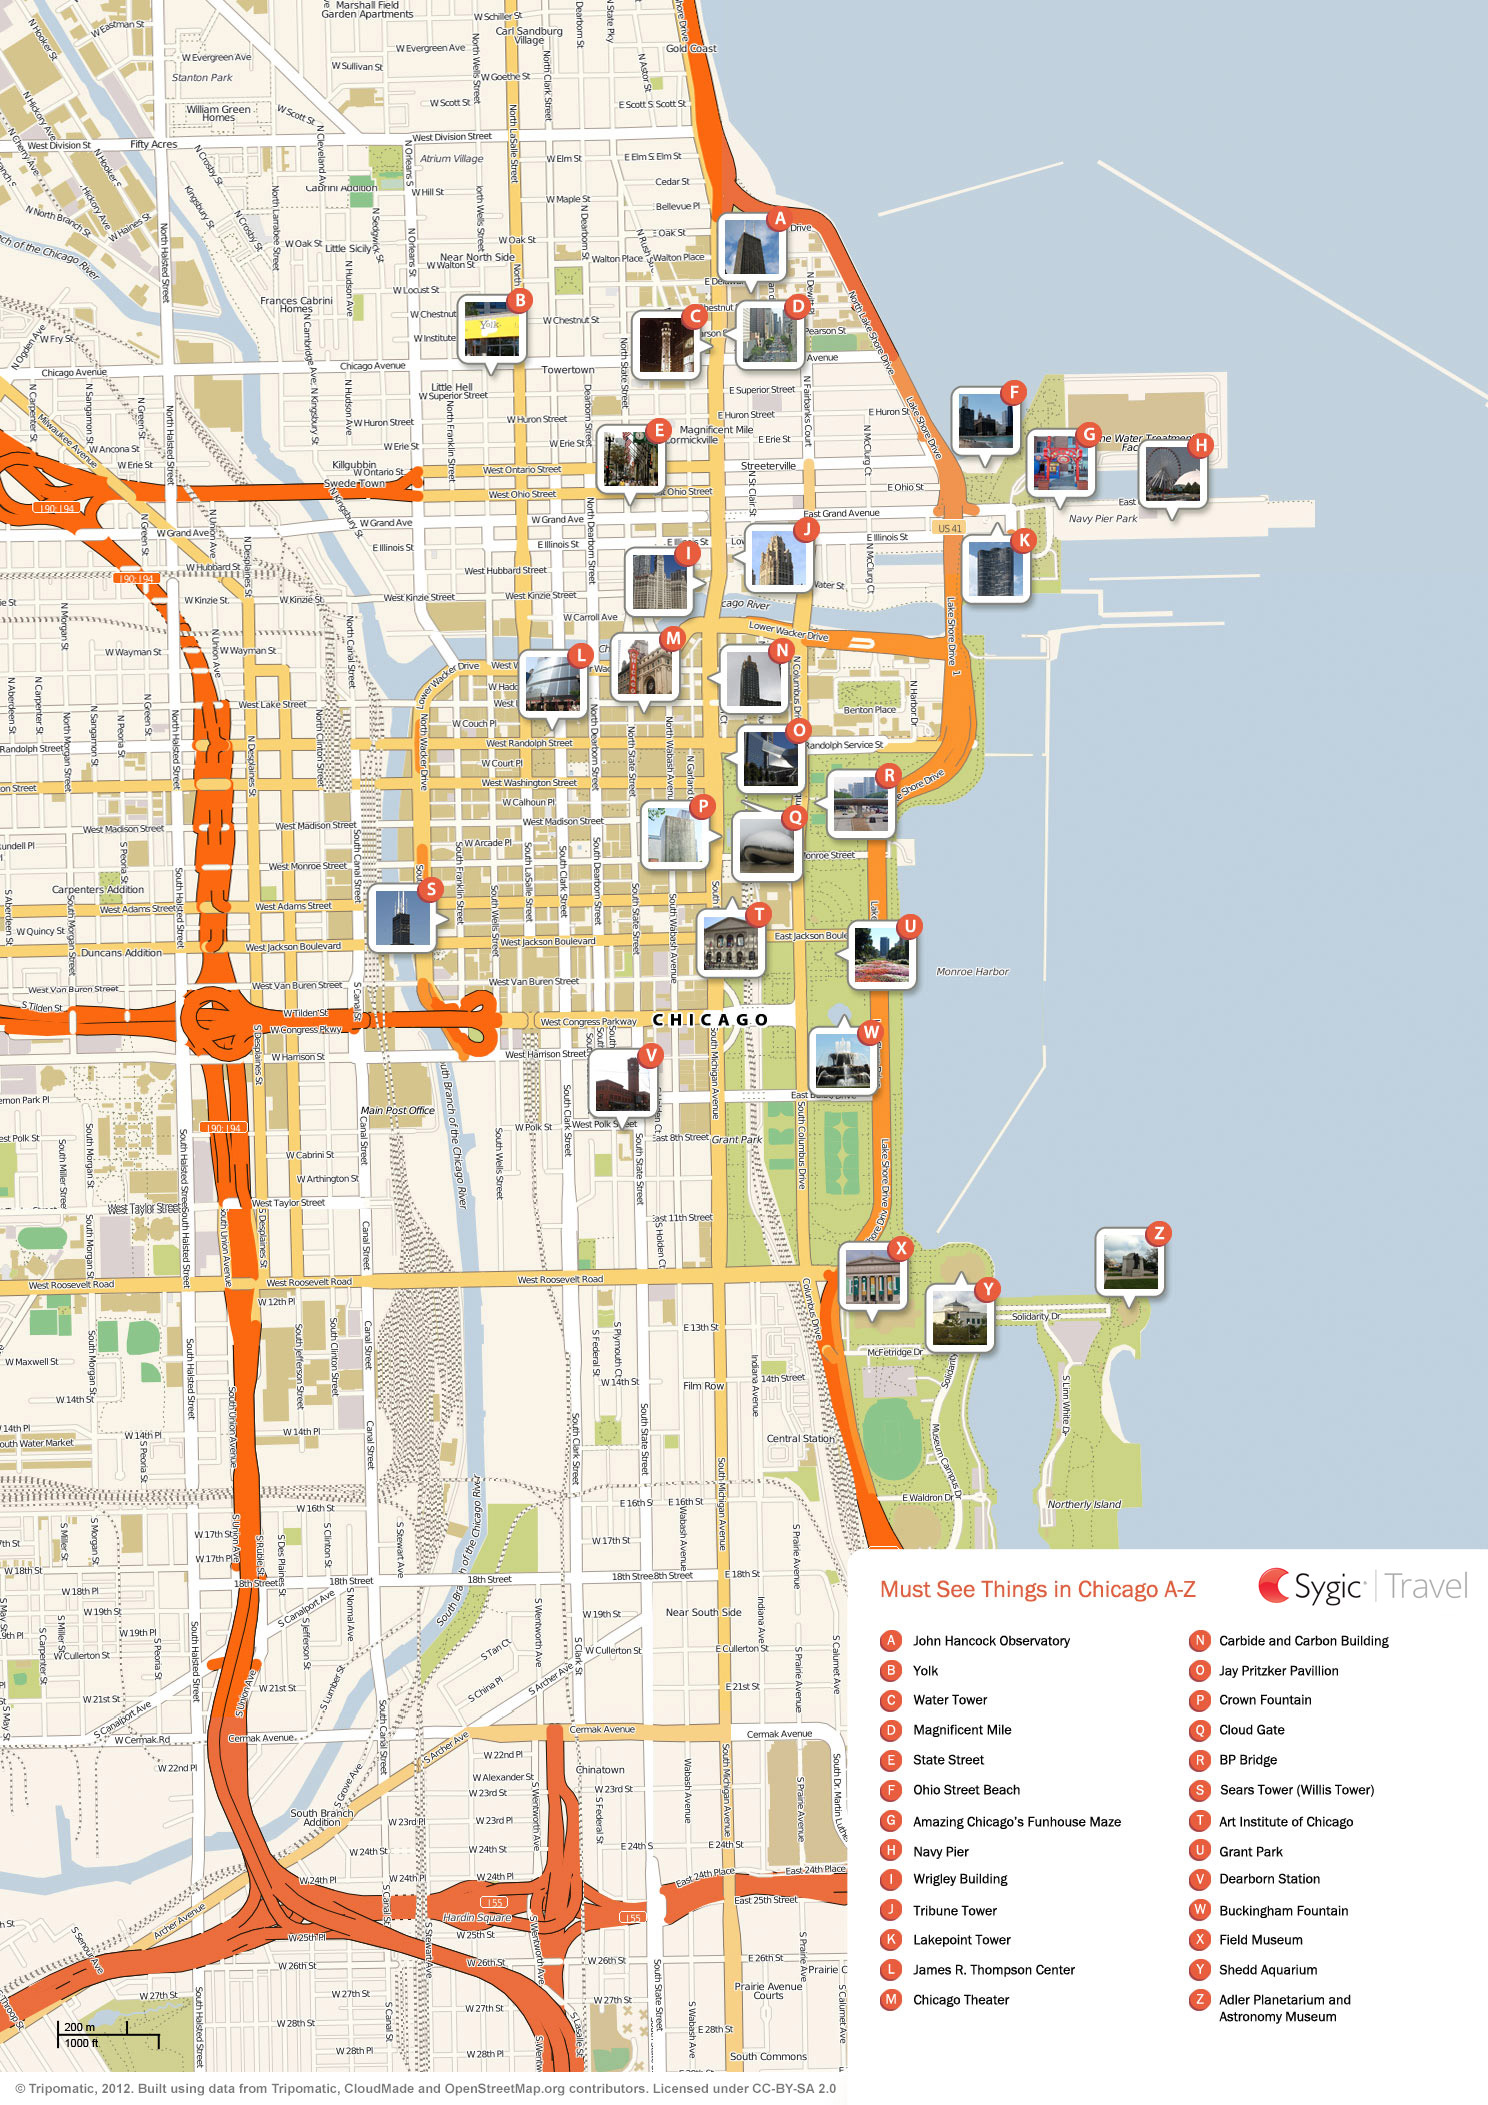 Chicago Printable Tourist Map – Printable Tourist Map Of London Attractions